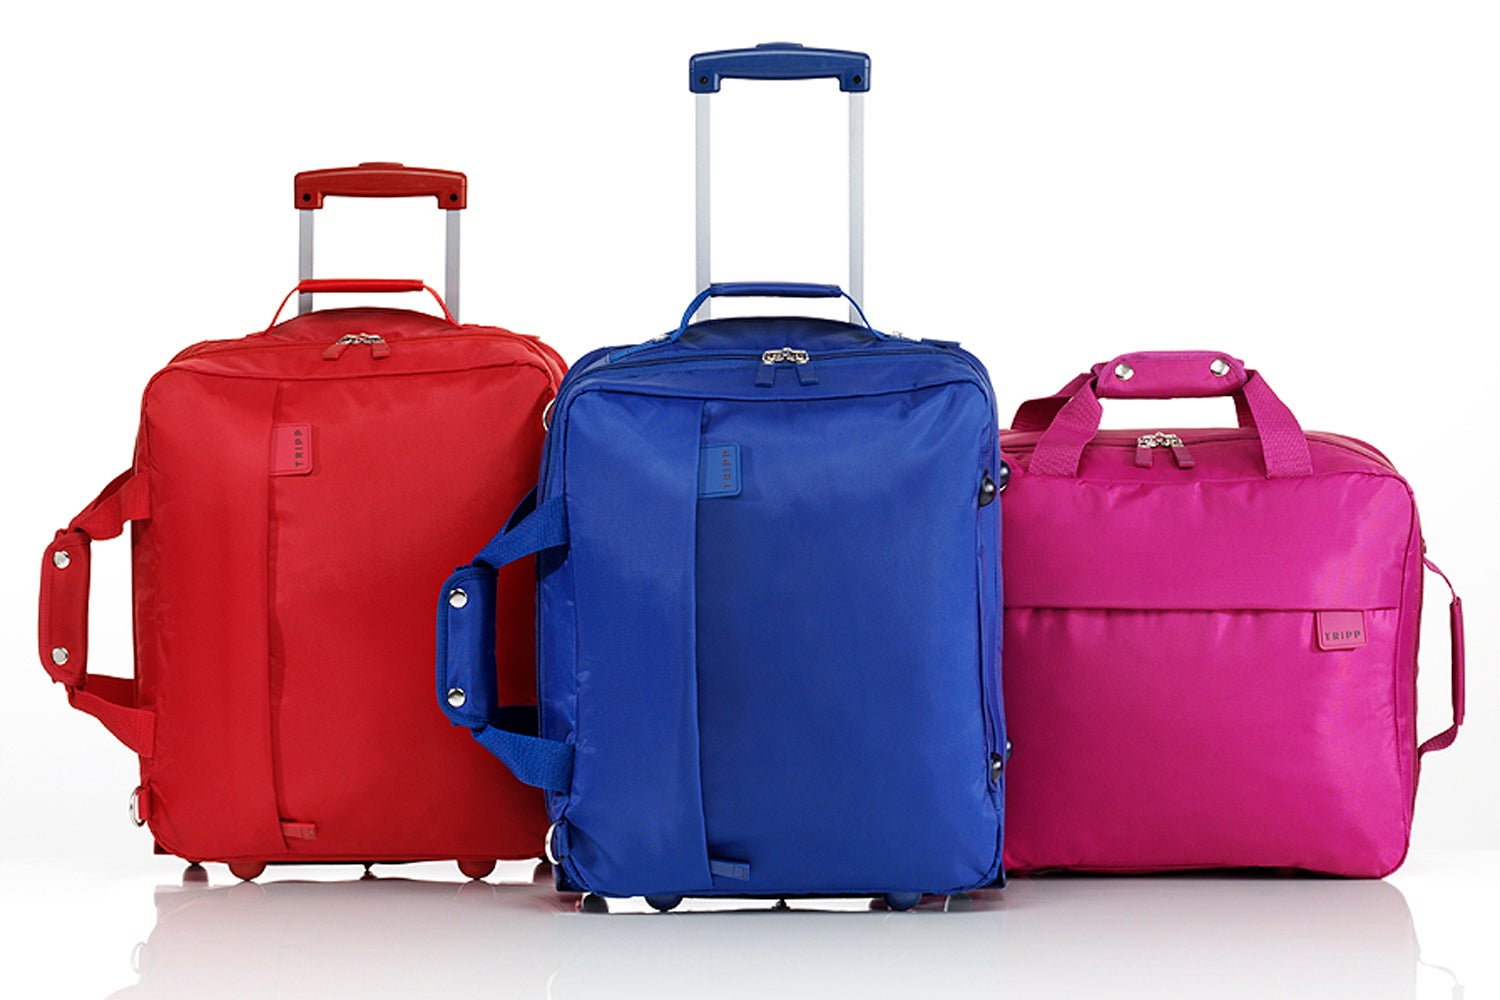 About Travel Luggage & Cabin Bags Homepage